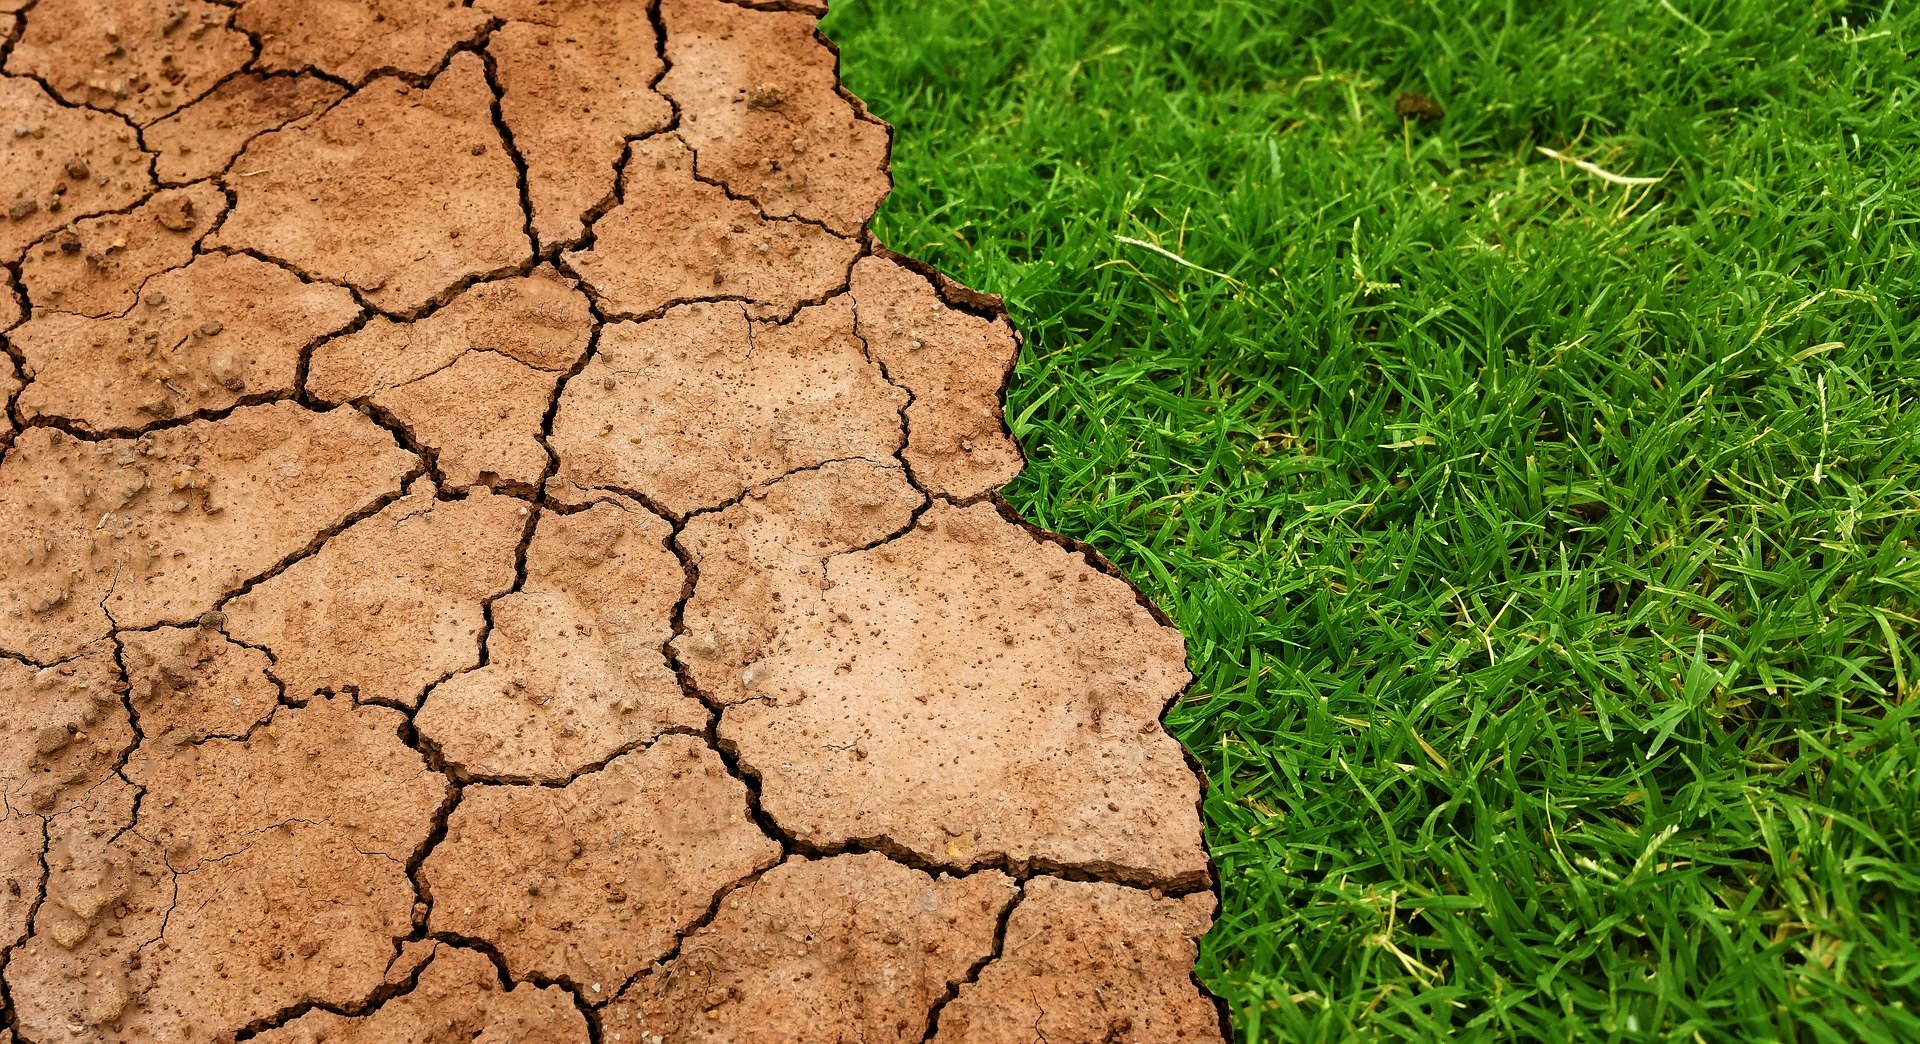 Finding innovative solutions for water scarcity in Southern Europe